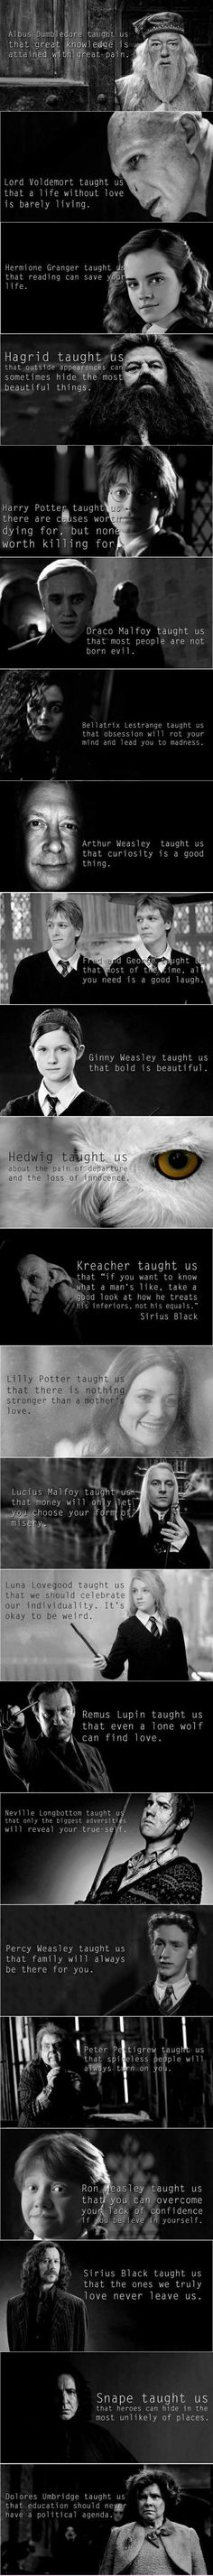 Wisdom from Harry Potter